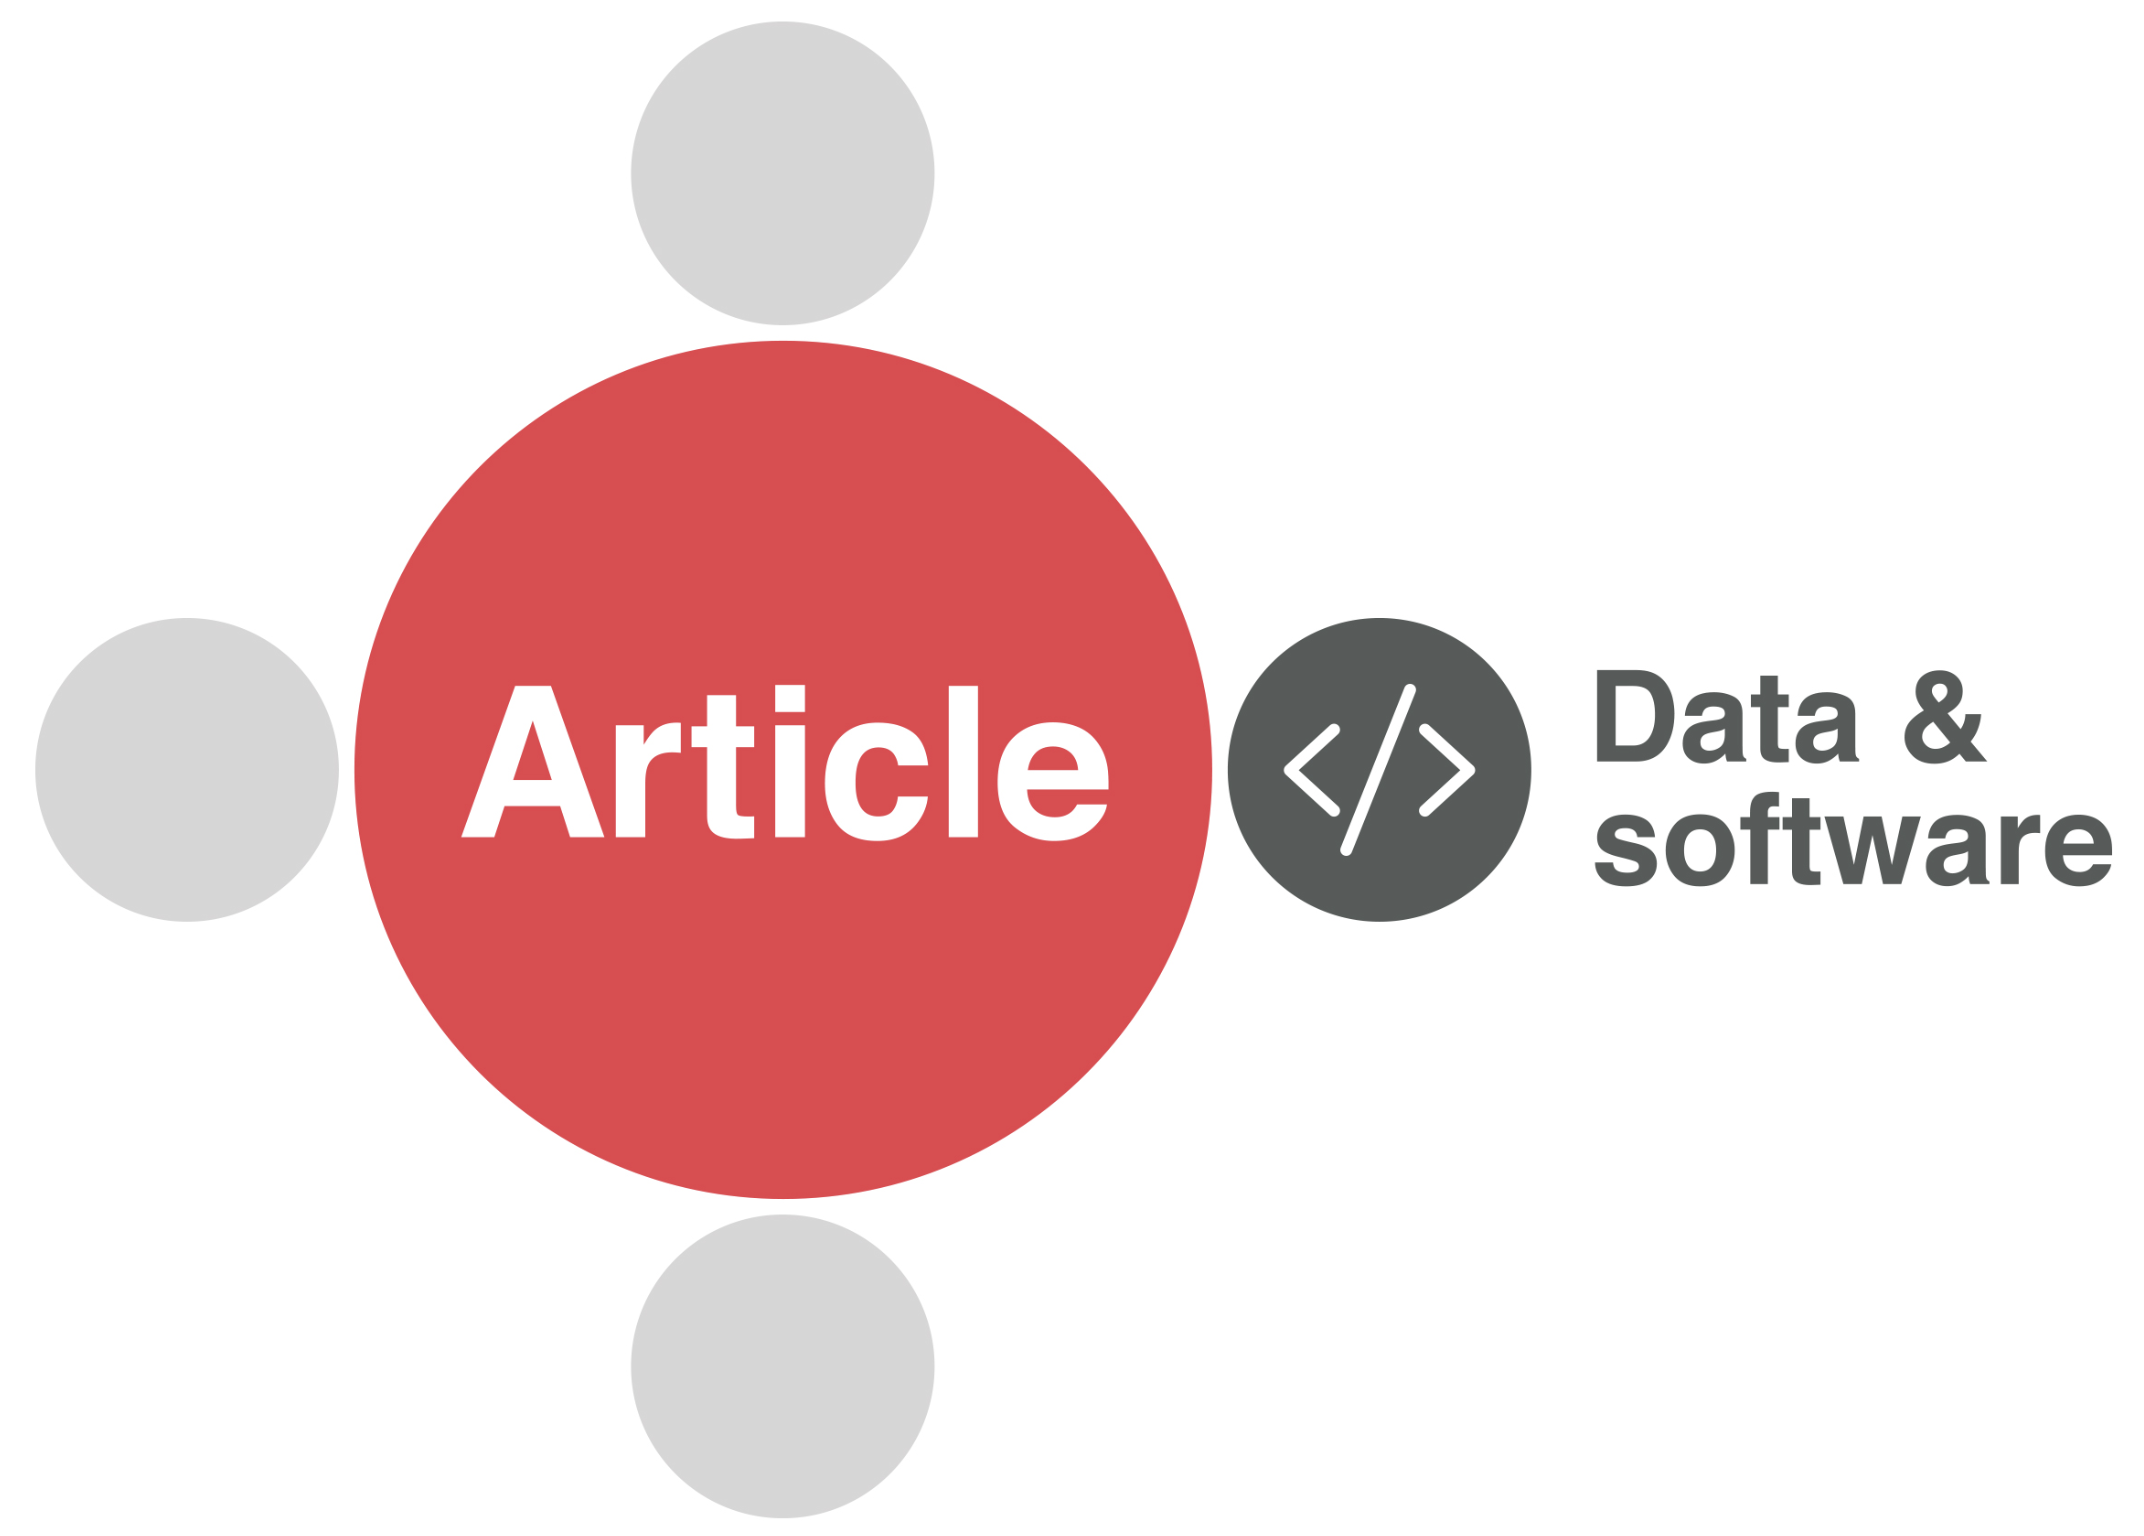 Article<->Data relationships in Crossref